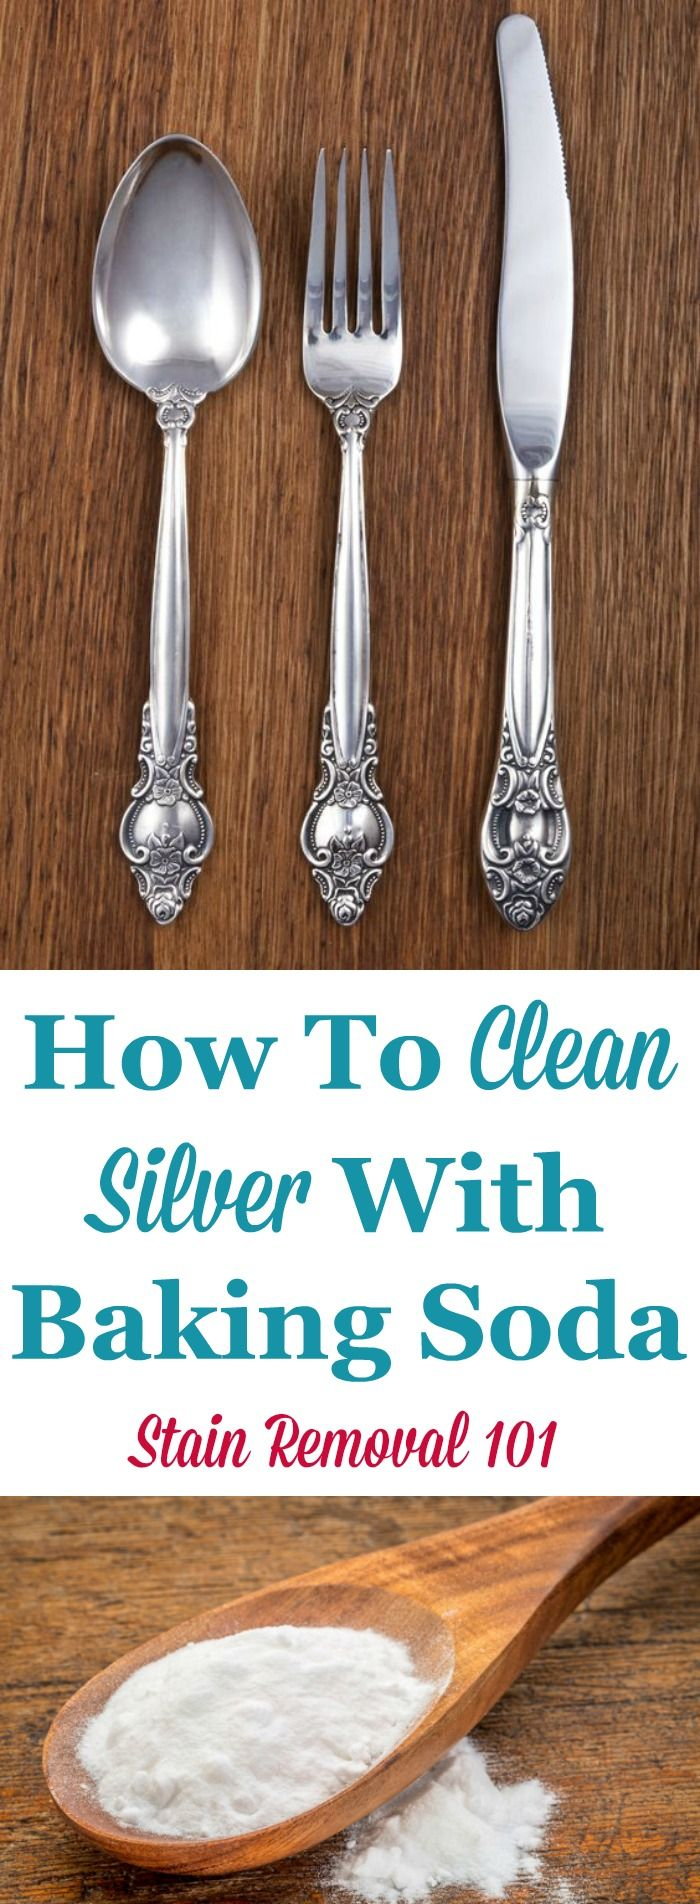 Cleaning Silver With Baking Soda: Cheap & Ecofriendly